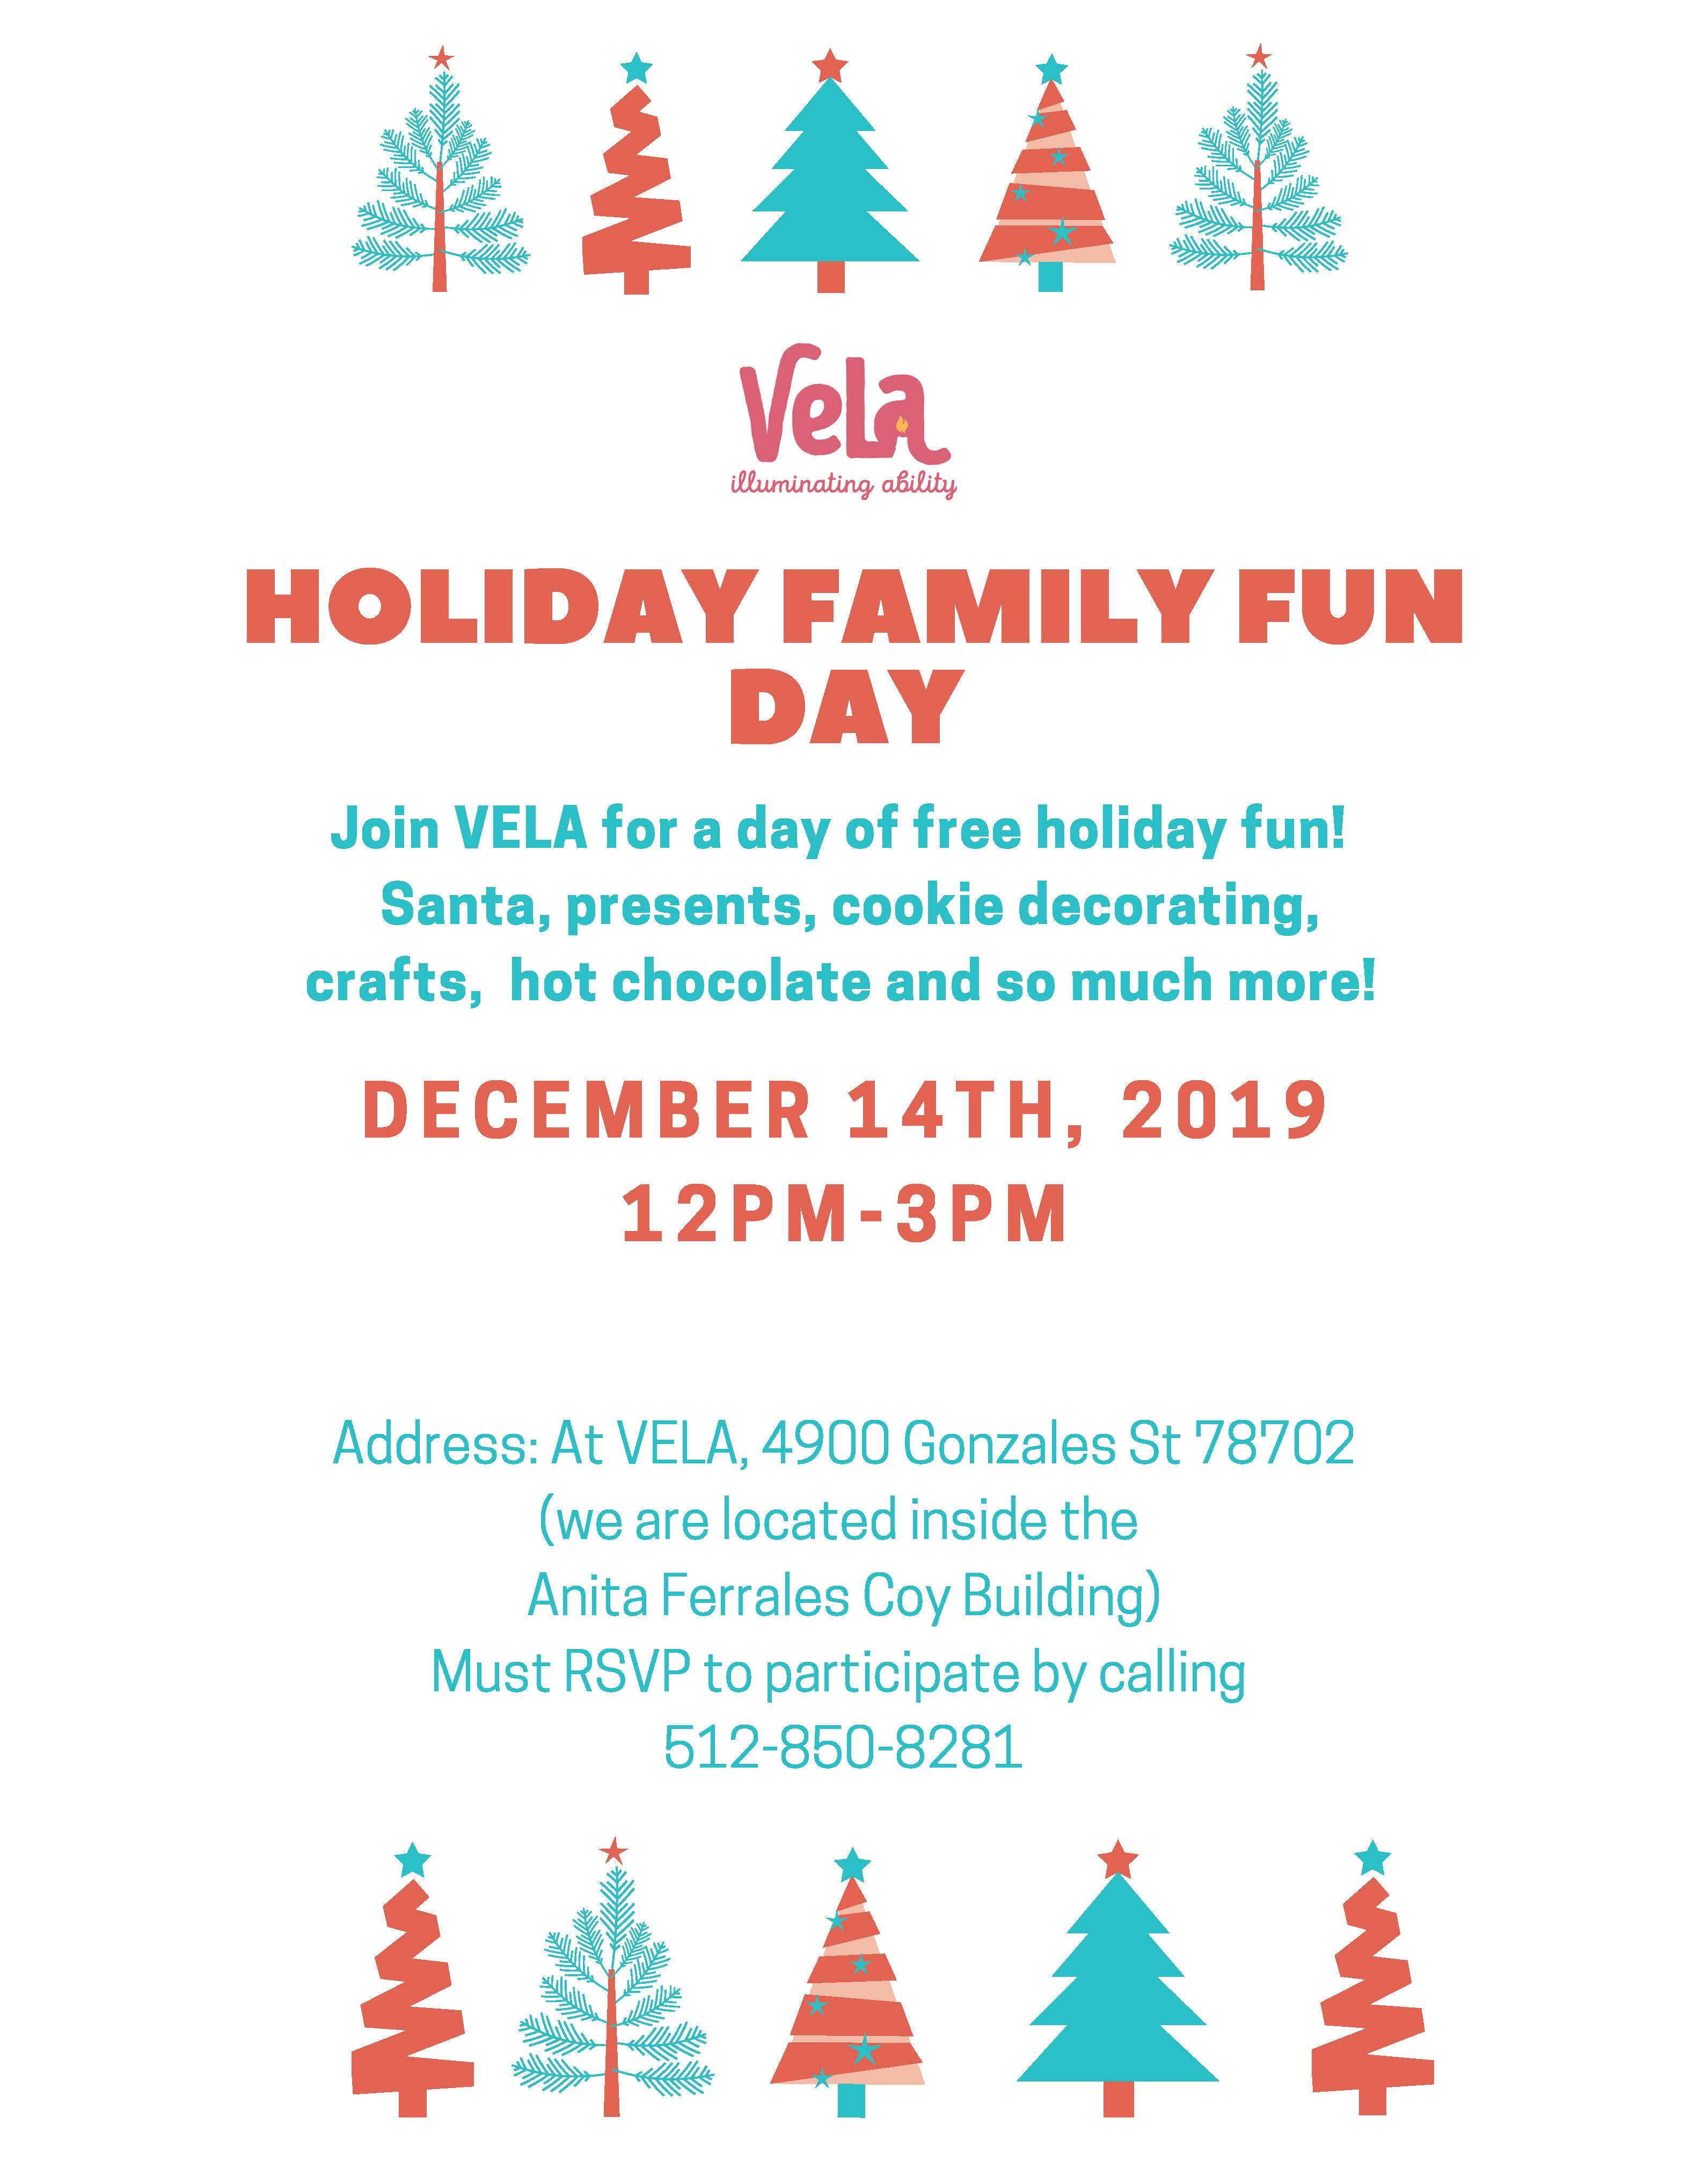 VELA Holiday Family Fun Day (2)_Page_1